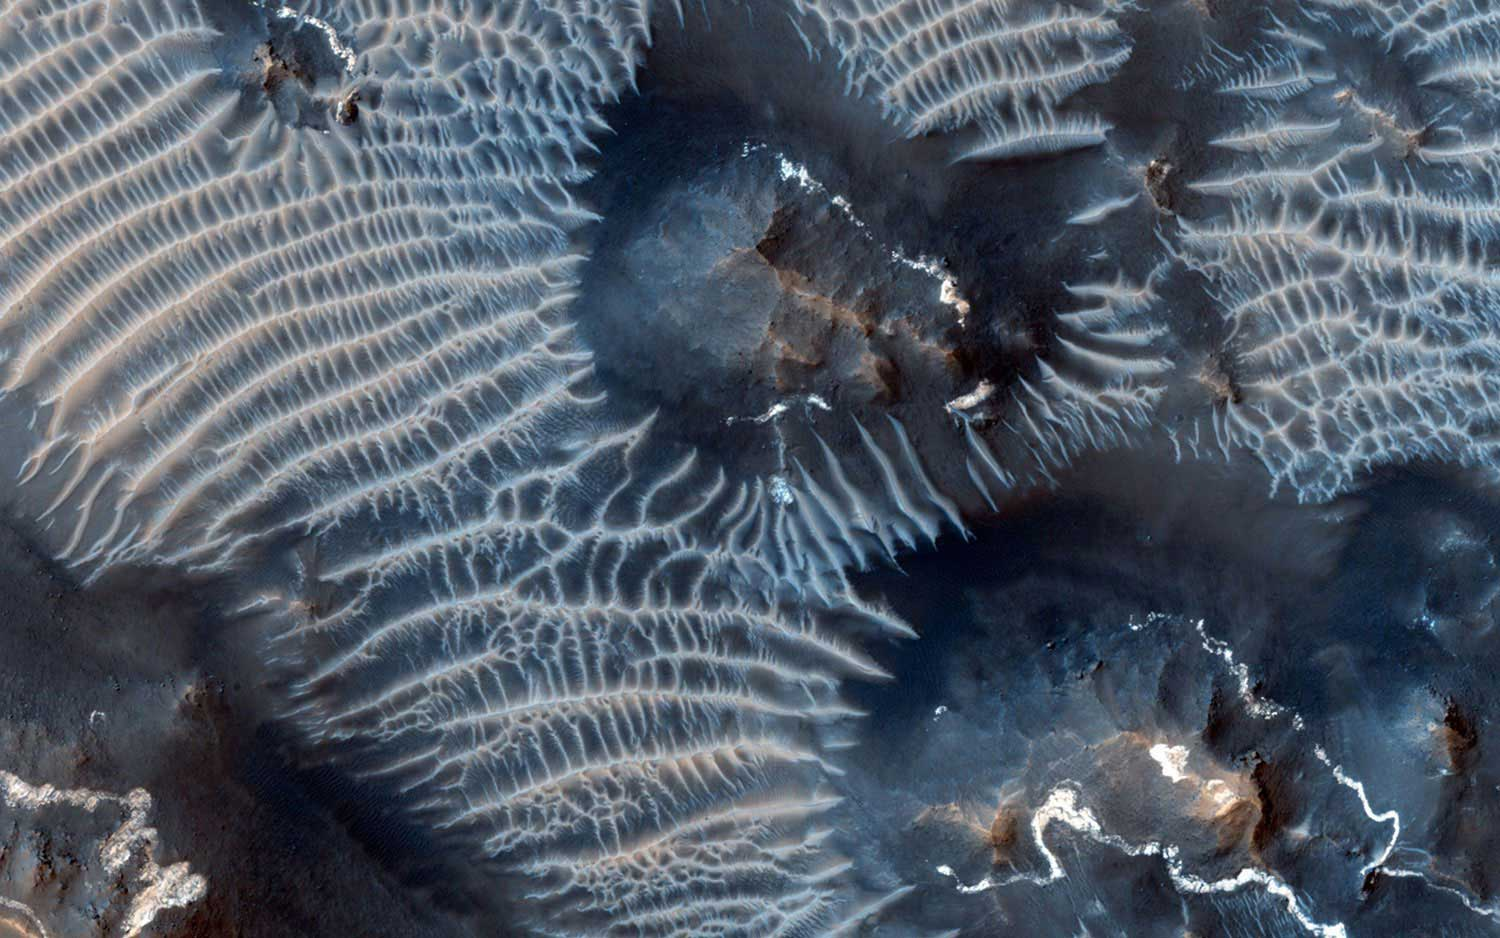 The Noctis Labyrinthus region of Mars, perched high in the Valles Marineris canyon system, as seen on Sept. 26, 2013. The image shows bright rimmed bedrock knobs, as well as two types of windblown sediments.